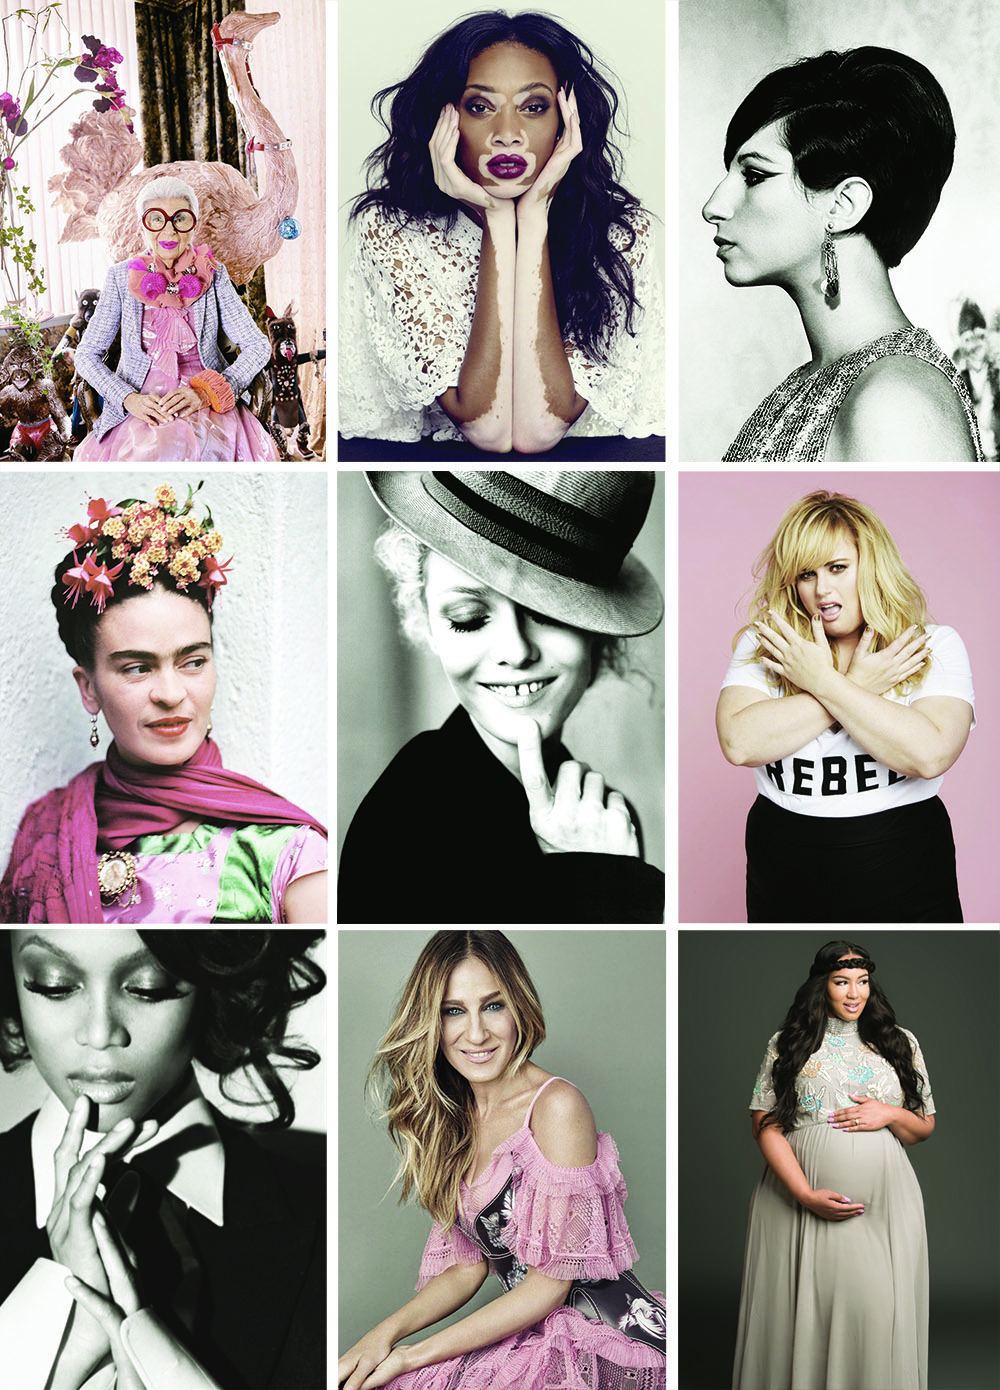 {Image credit from left to right, top to bottom:  Image 1 : Iris Apfel,  Image 2 : Winnie Harlow,  Image 3 : Barbra Streisand,  Image 4 : Frida Kahlo,  Image 5 : Vanessa Paradis,  Image 6 : Rebel Wilson,  Image 7 : Tyra Banks,  Image 8 : Sarah Jessica Parker,  Image 9 : Rochelle Johnson.}